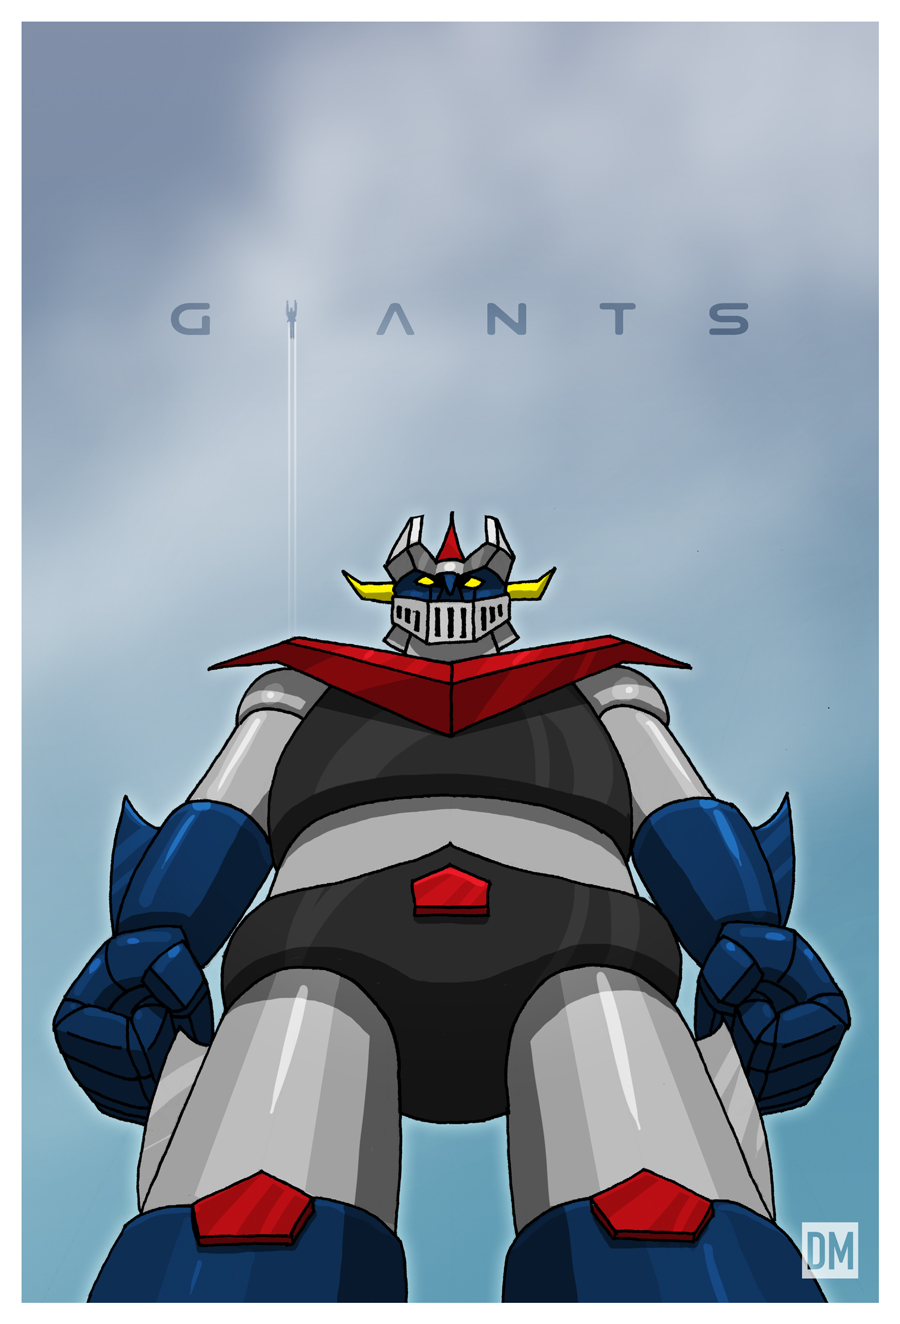 Giants - Great Mazinger by DanielMead